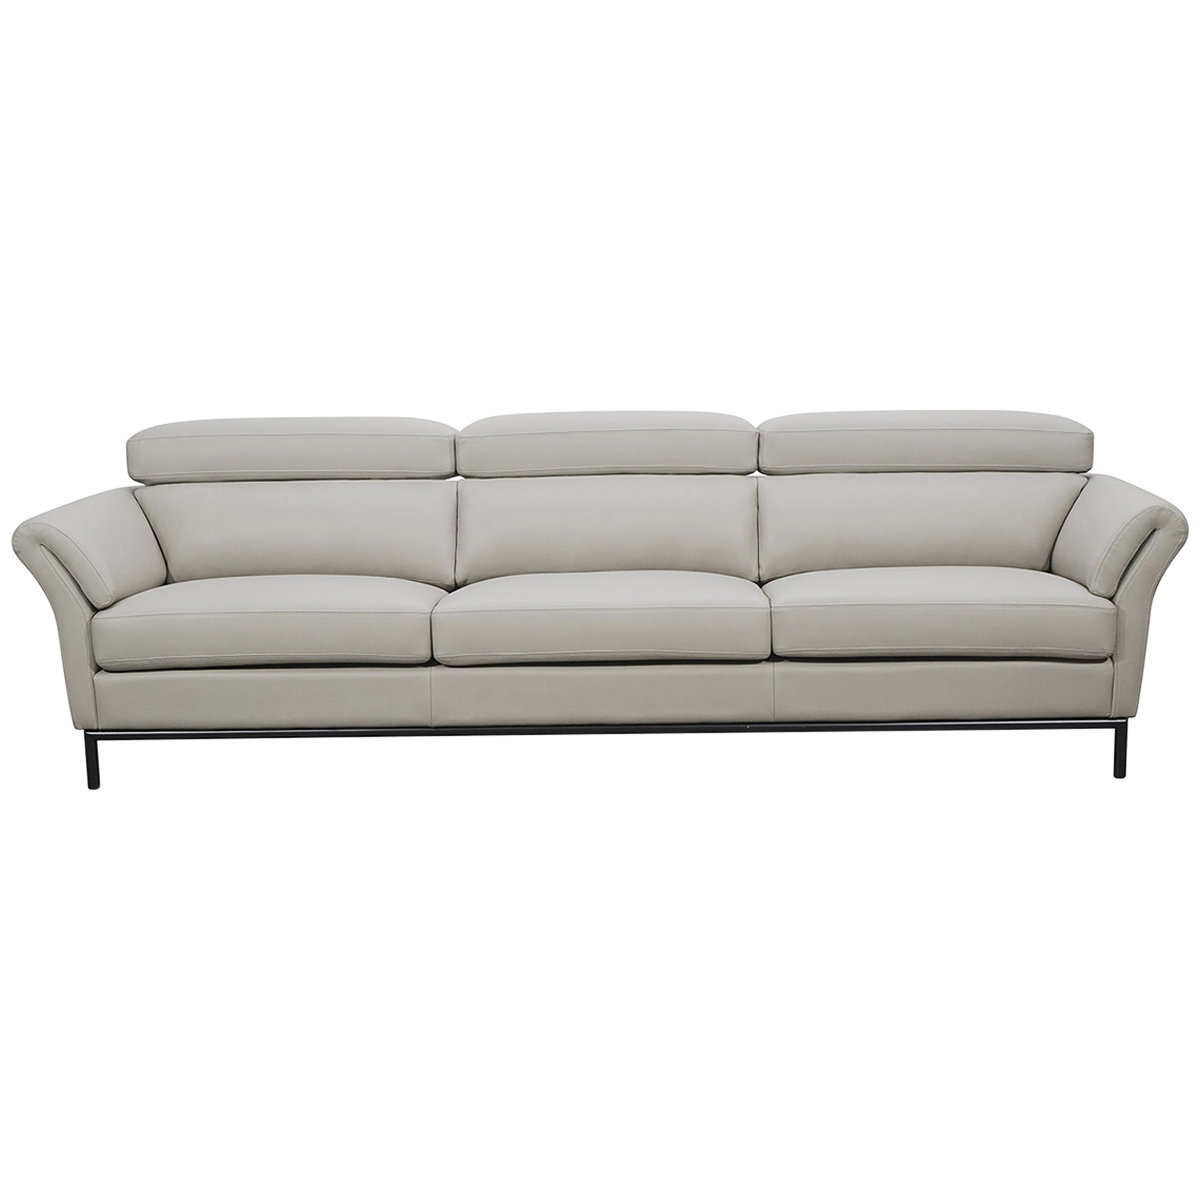 Moran Vancouver 3 Seater Leather Sofa Costco Australia